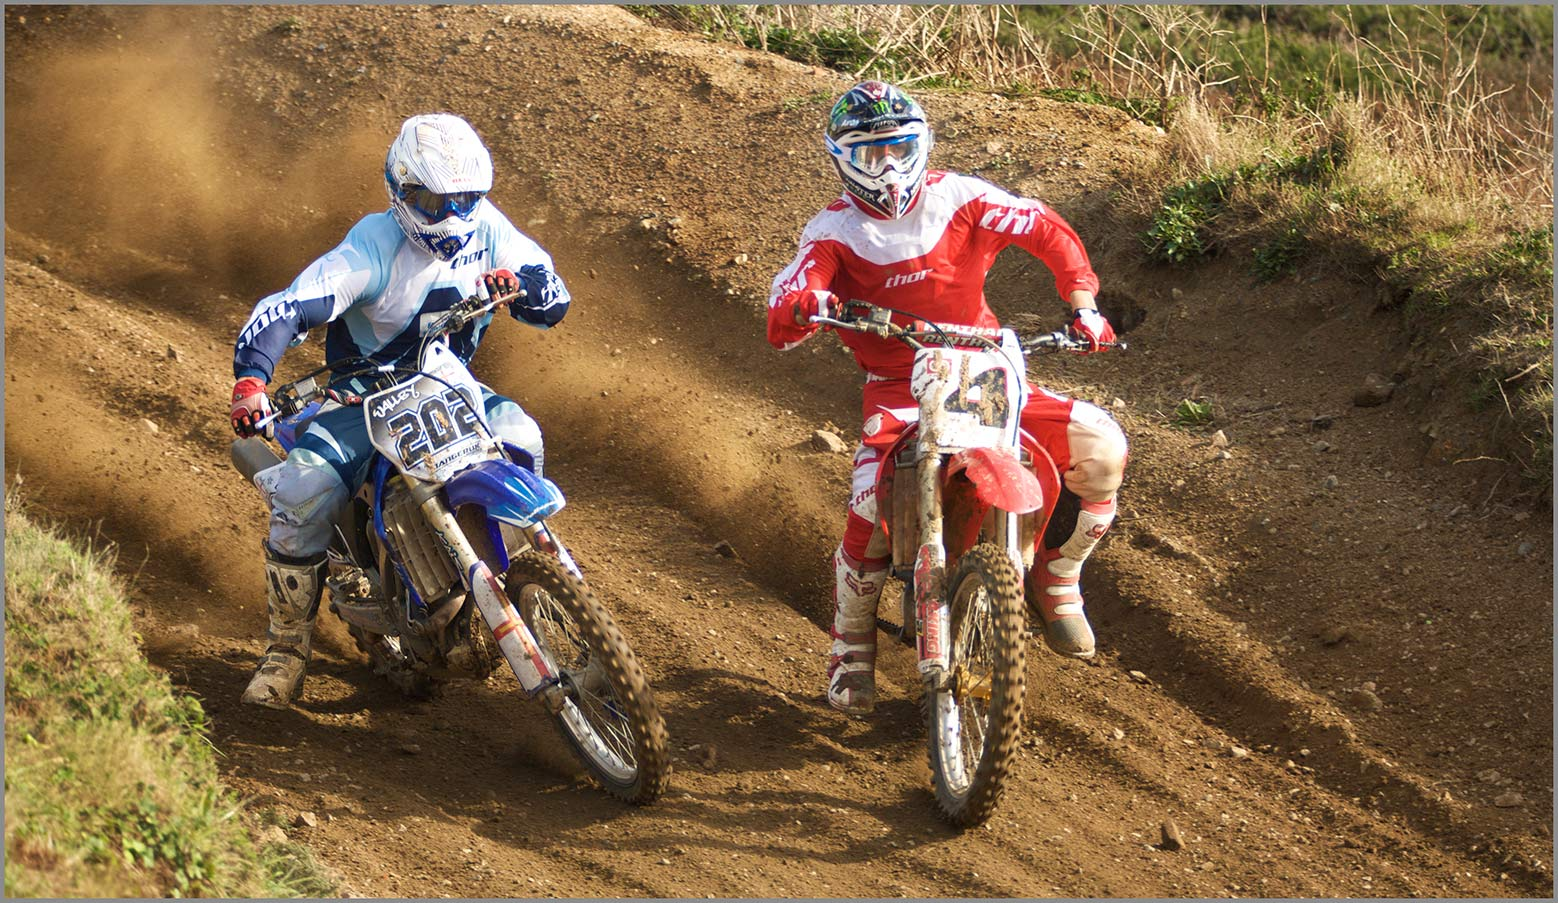 Action motor cross photograph using fast shutter speed